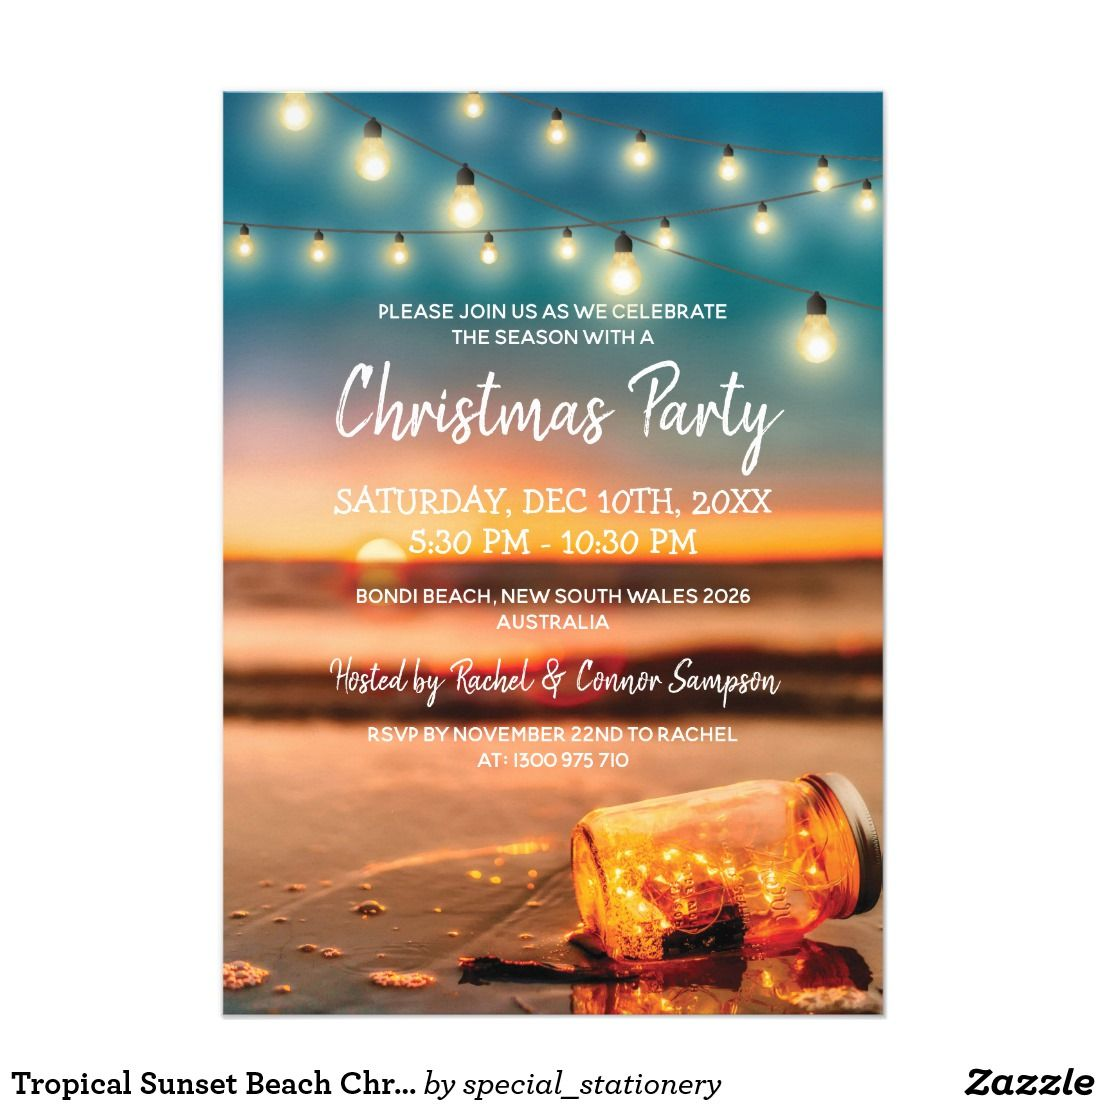 Tropical Sunset Beach Christmas Party Invitations   Zazzle ...